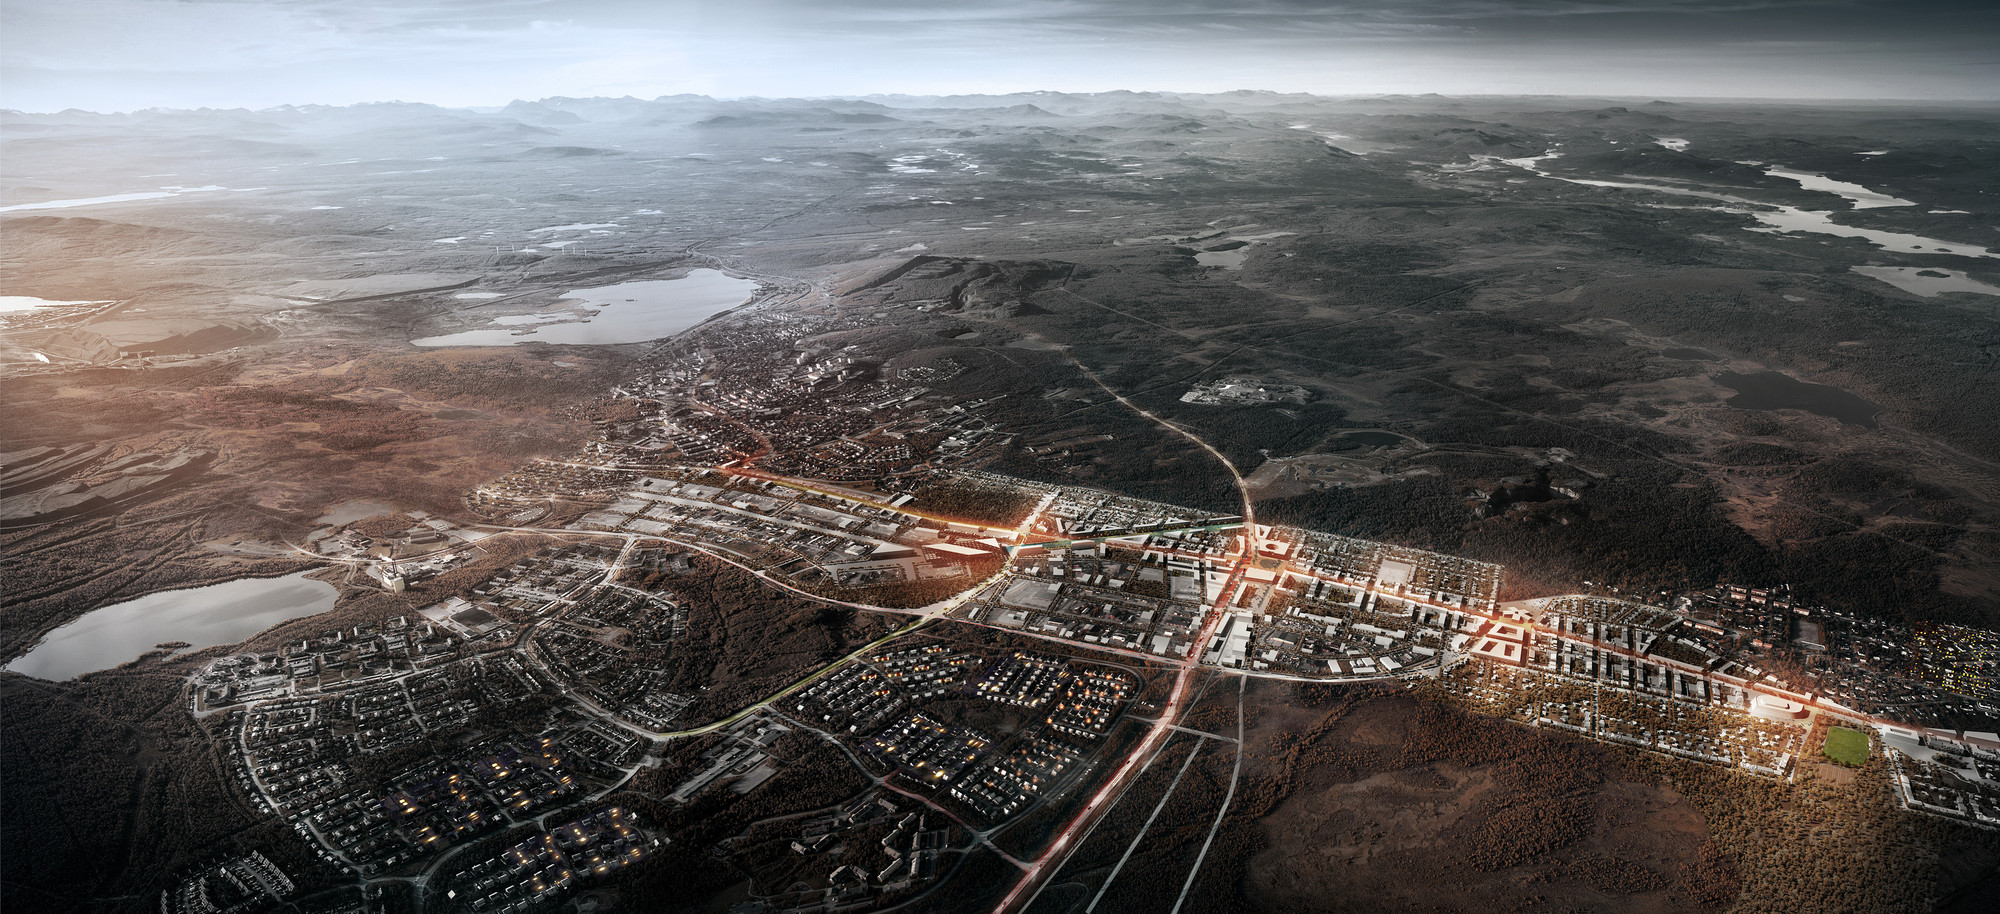 Relocation of the City Center of Kiruna Winning Proposal / White Architects, Courtesy of White Architects